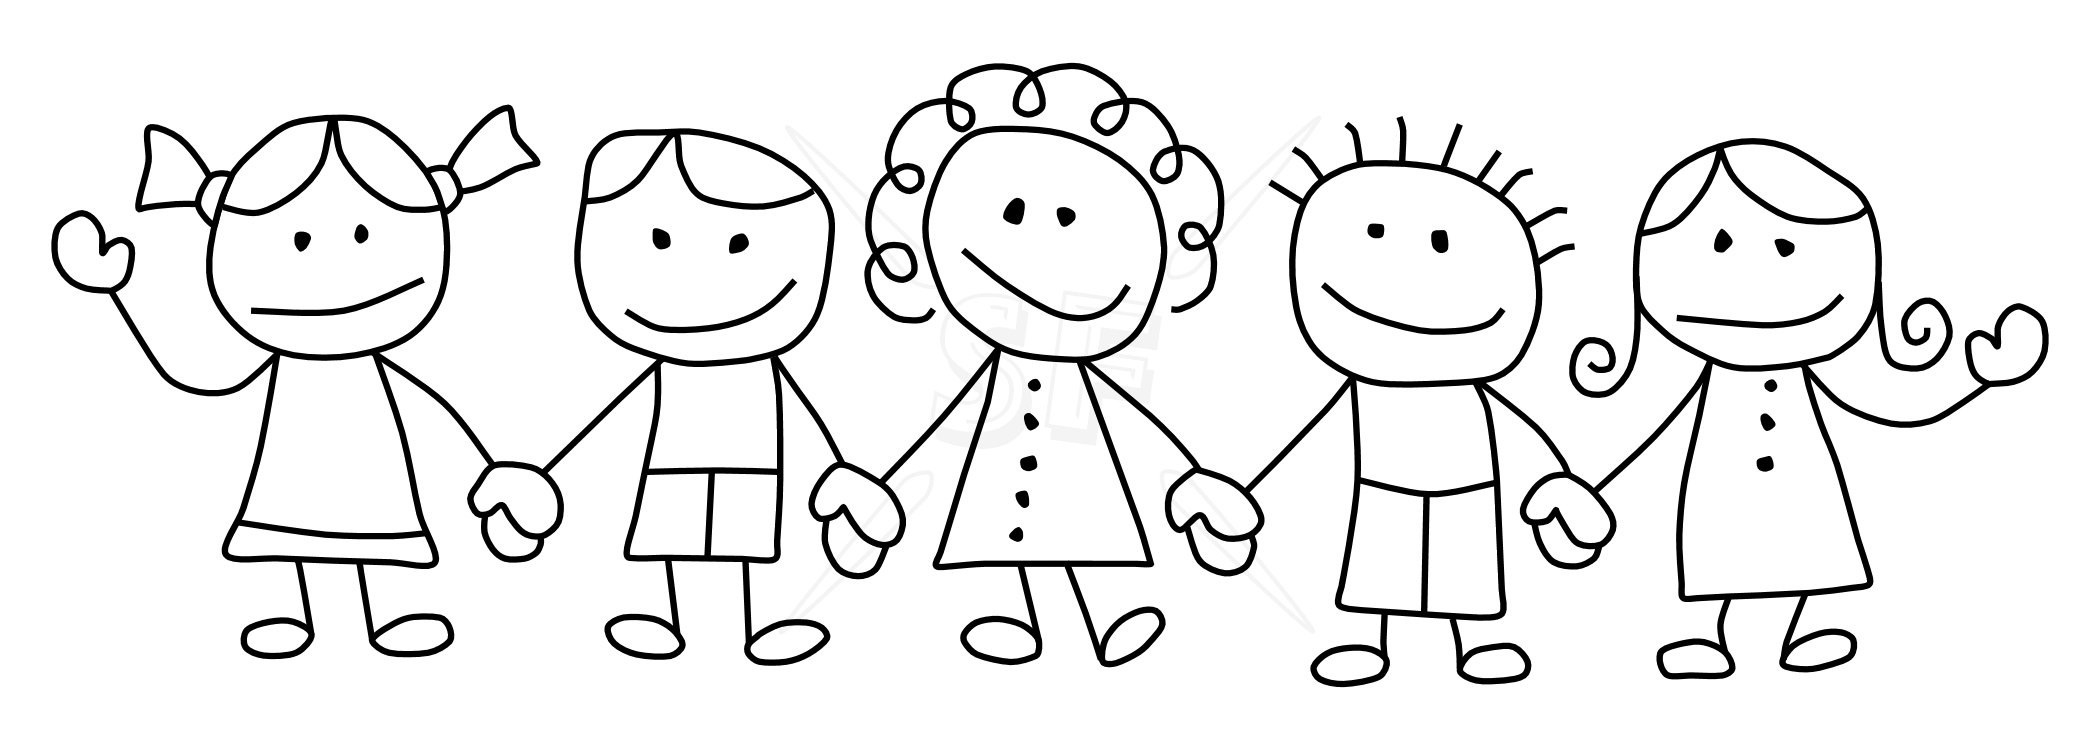 Children Holding Hands Black And White Clipart – Kind Of ...